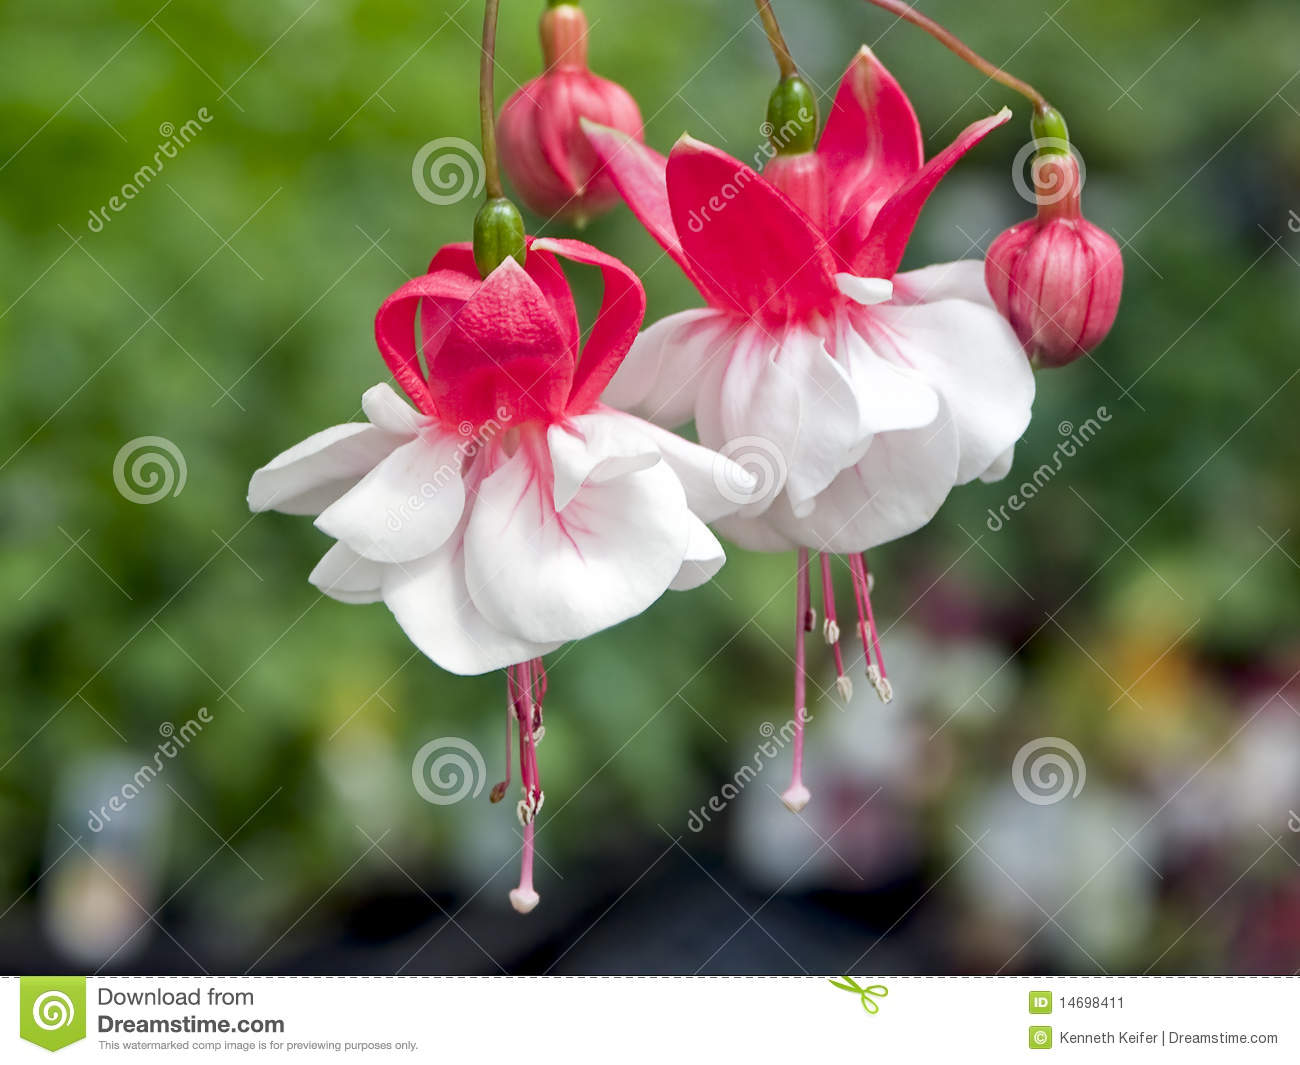 Fuchsia Red And White Flowers Stock Image Image Of Hybrid